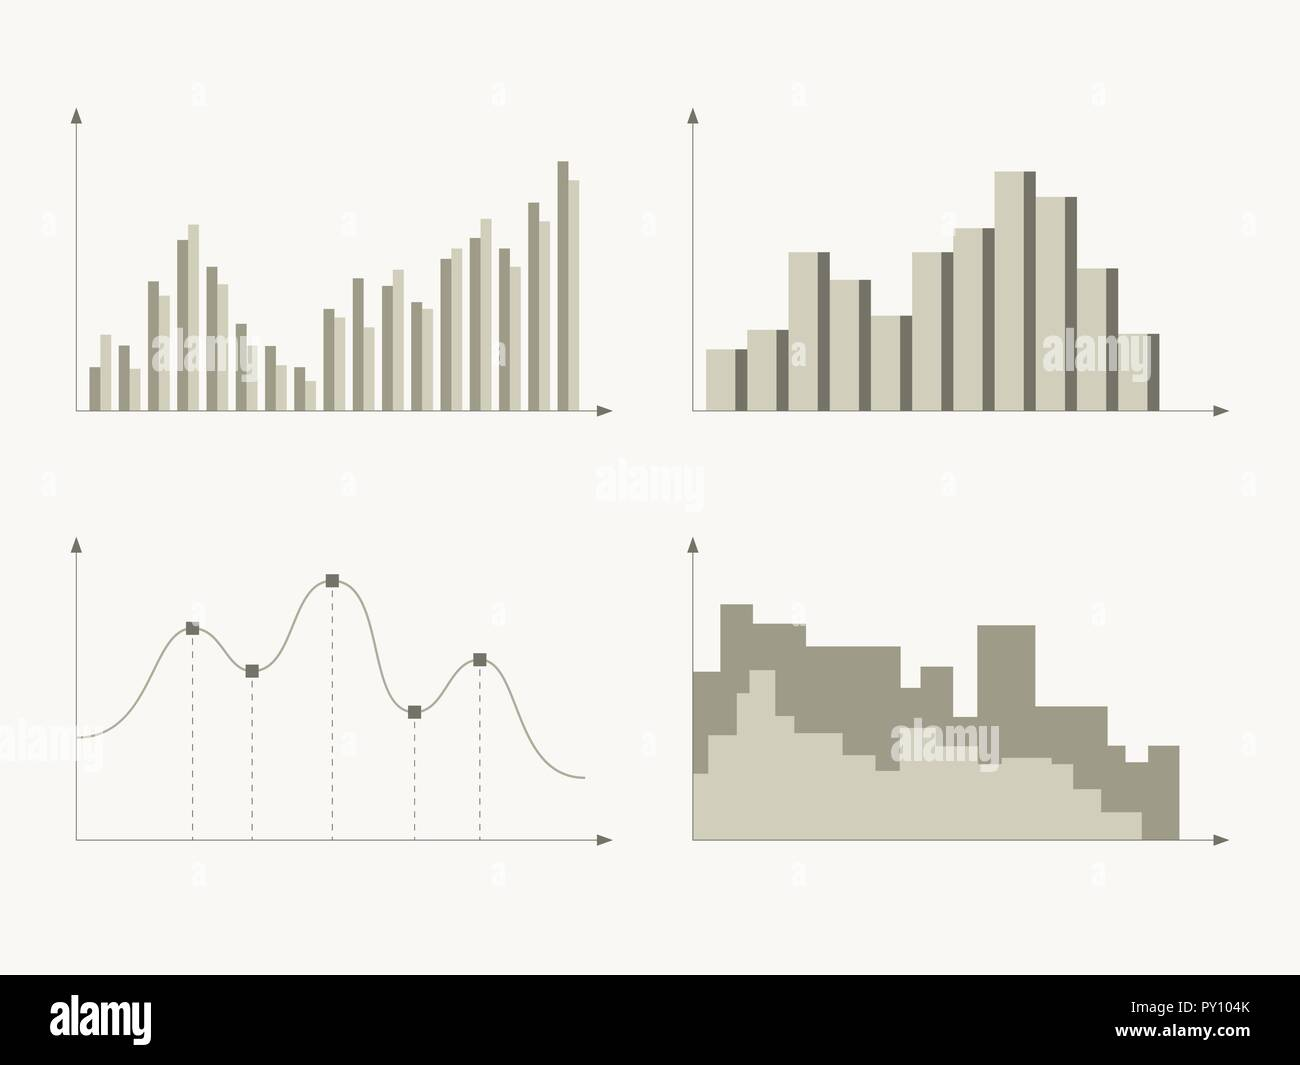 statistical analysis graphs and diagrams cat5e wiring diagram pdf data visualization infographic stock photos